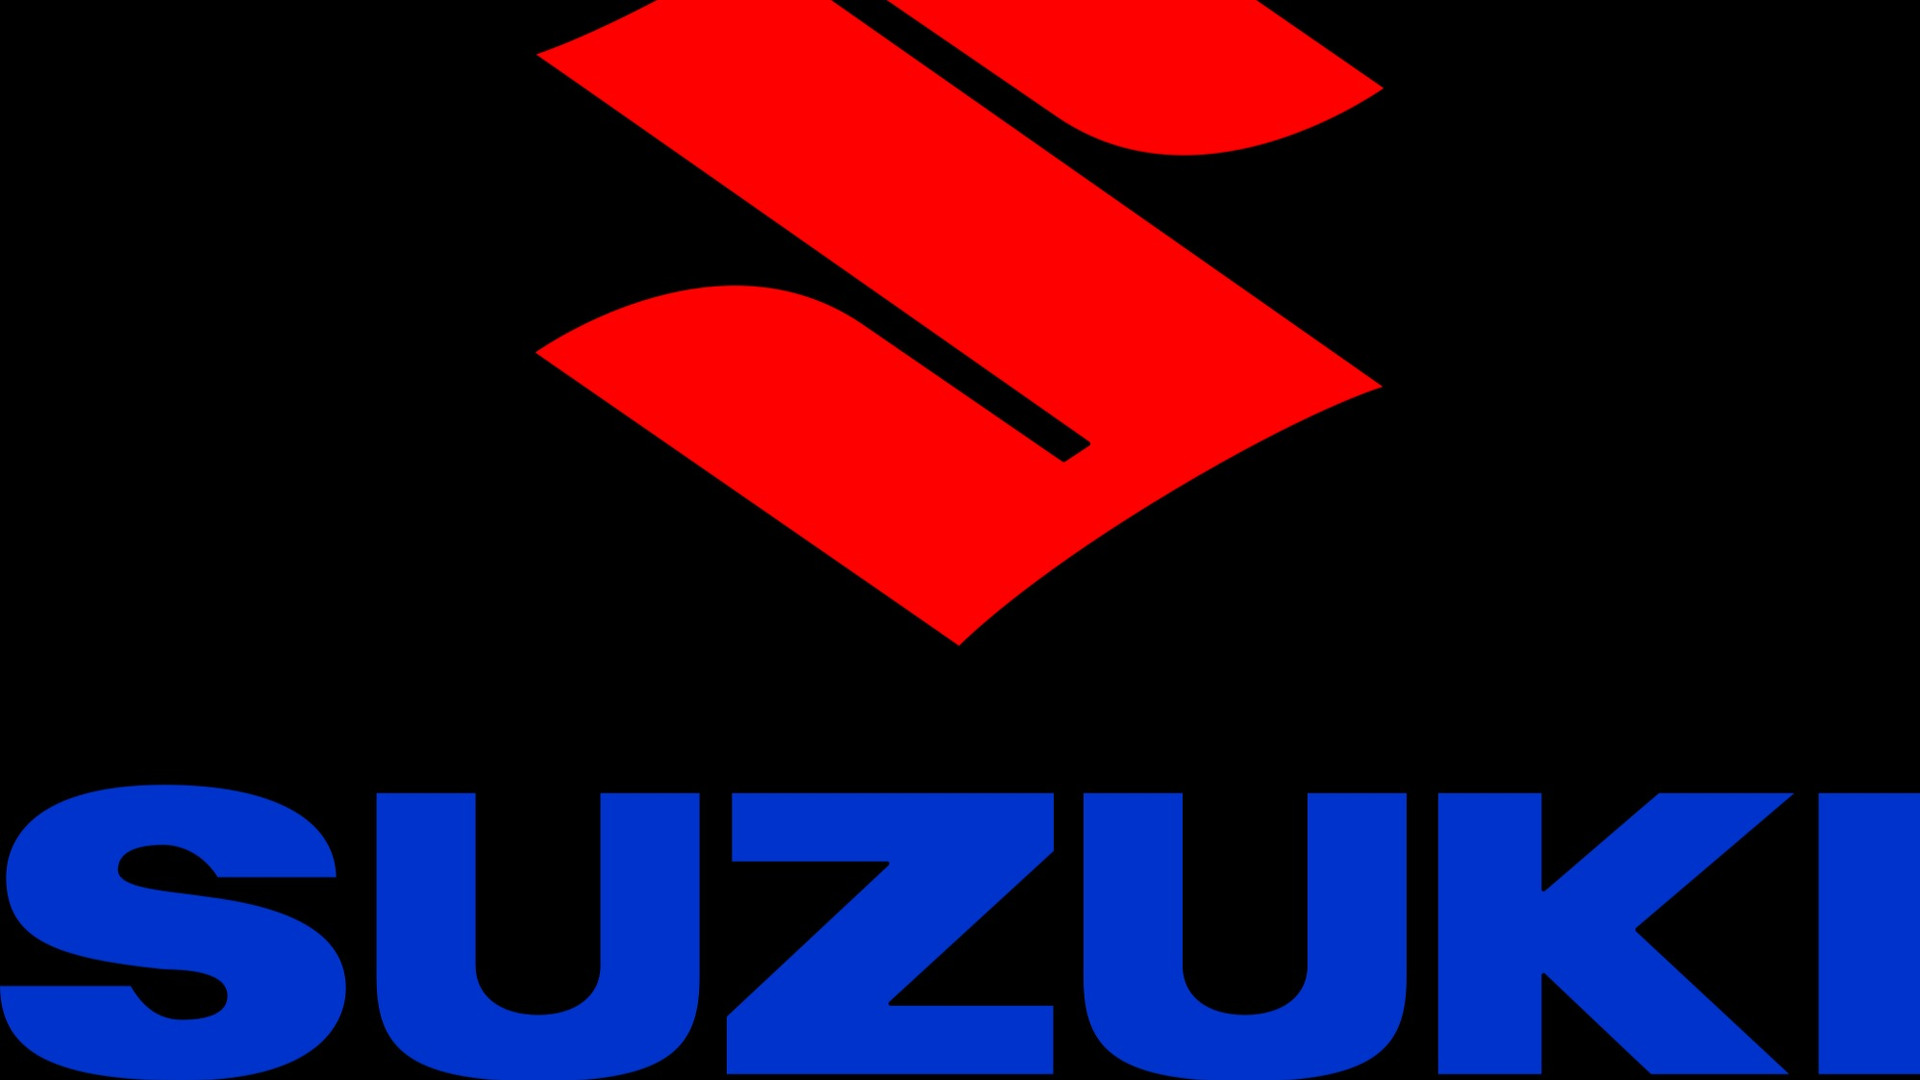 Suzuki News and Reviews | Motor1.com